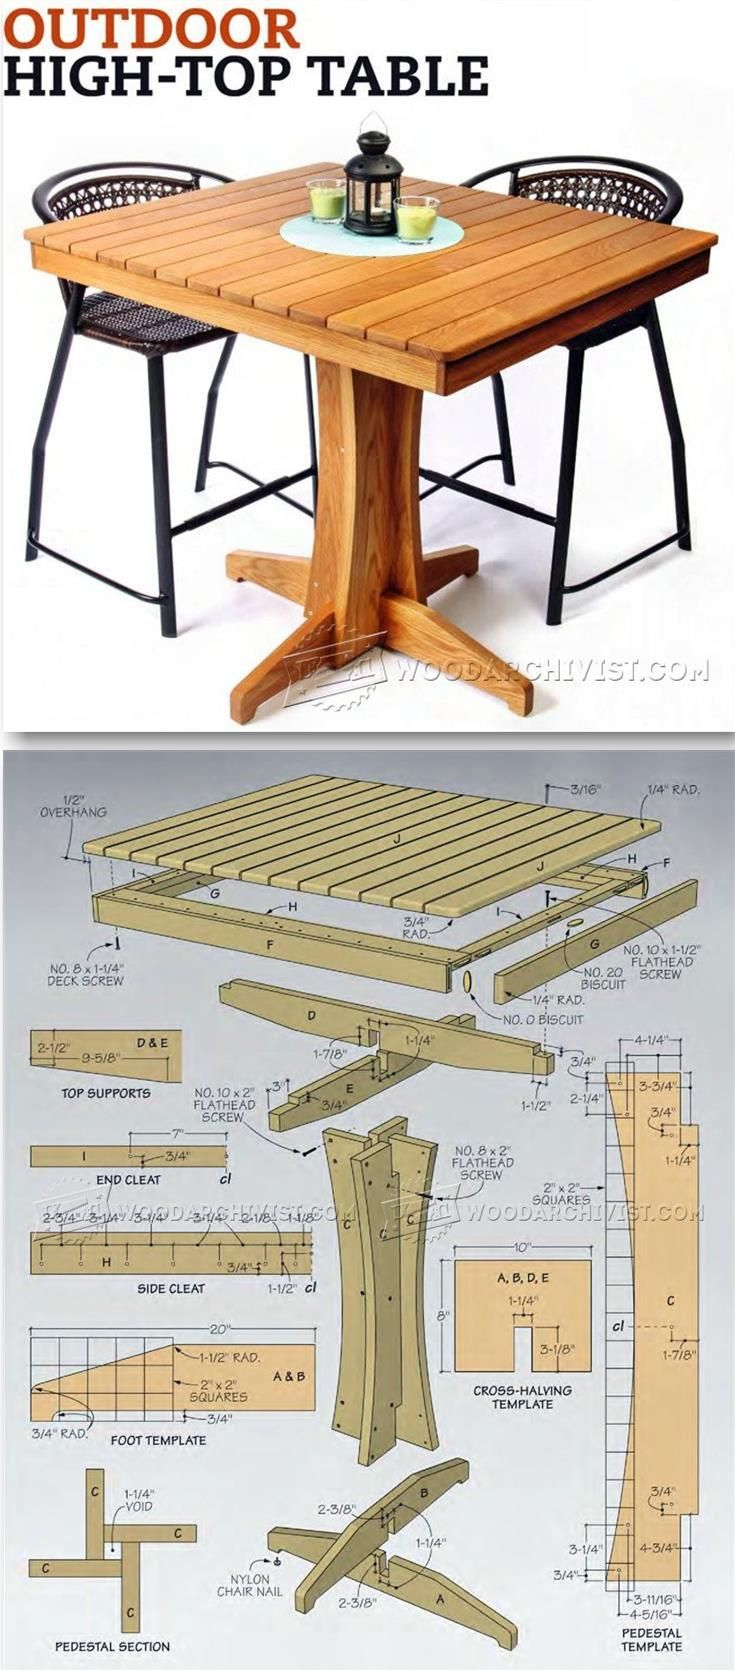 Outdoor High Top Table Plans Outdoor Furniture Plans Projects - High top pedestal table